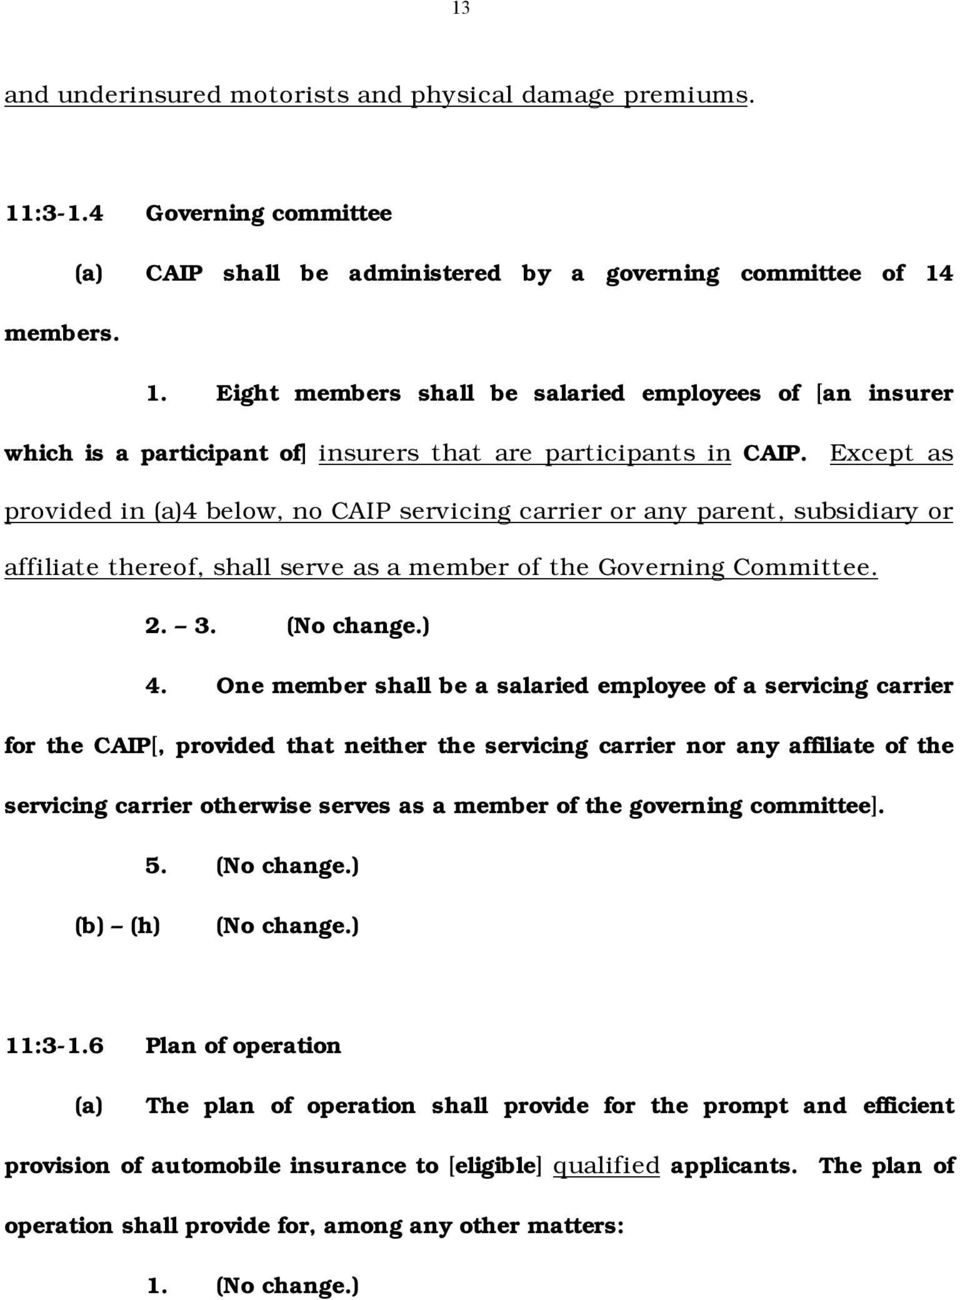 One member shall be a salaried employee of a servicing carrier for the CAIP[, provided that neither the servicing carrier nor any affiliate of the servicing carrier otherwise serves as a member of